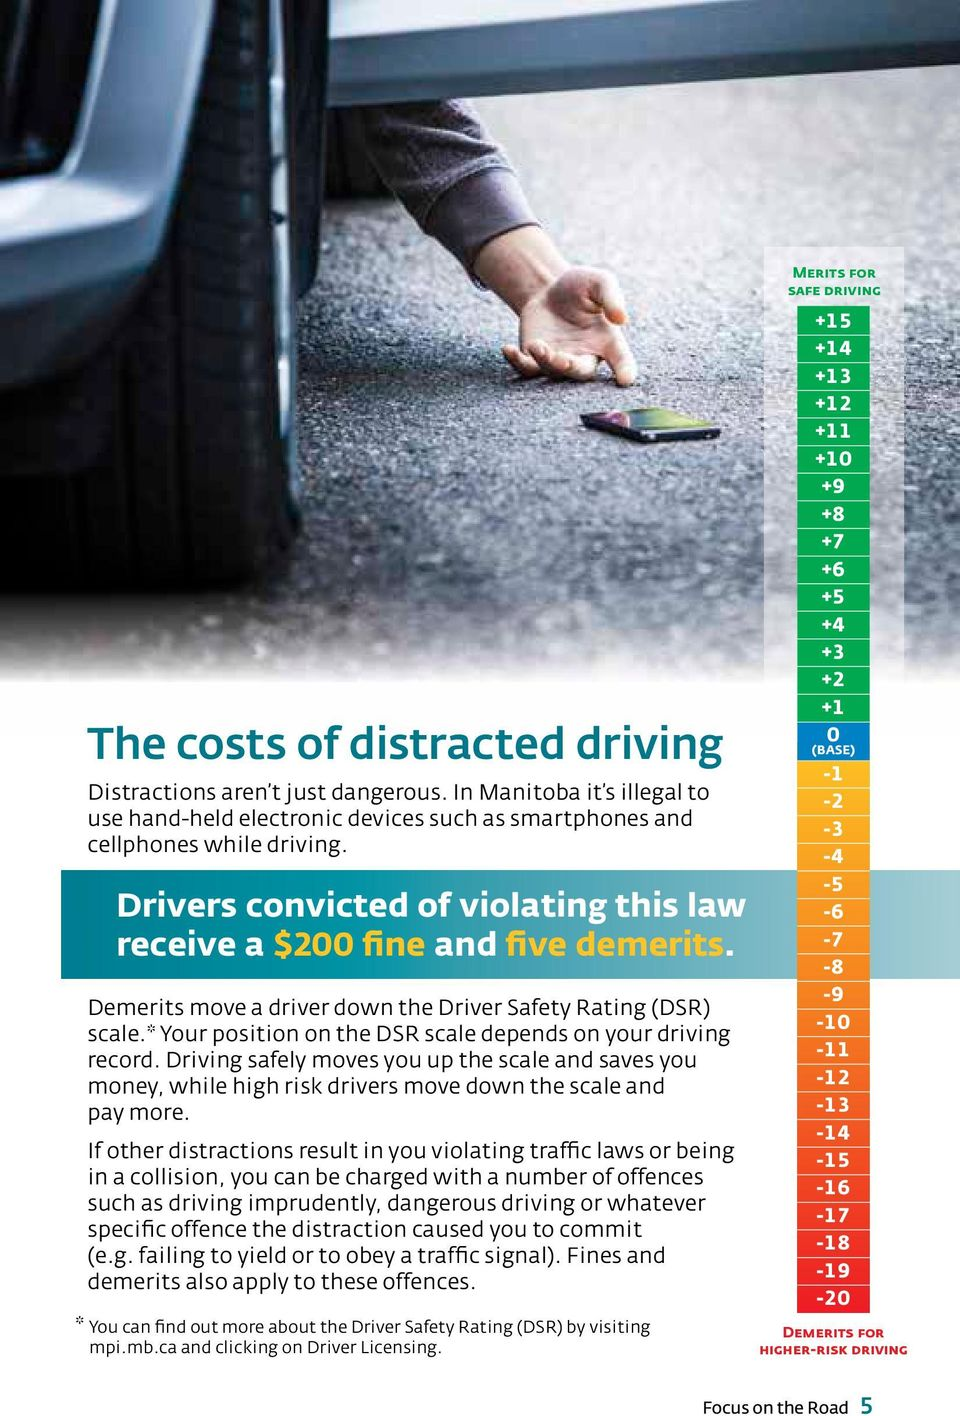 * Your position on the DSR scale depends on your driving record. Driving safely moves you up the scale and saves you money, while high risk drivers move down the scale and pay more.